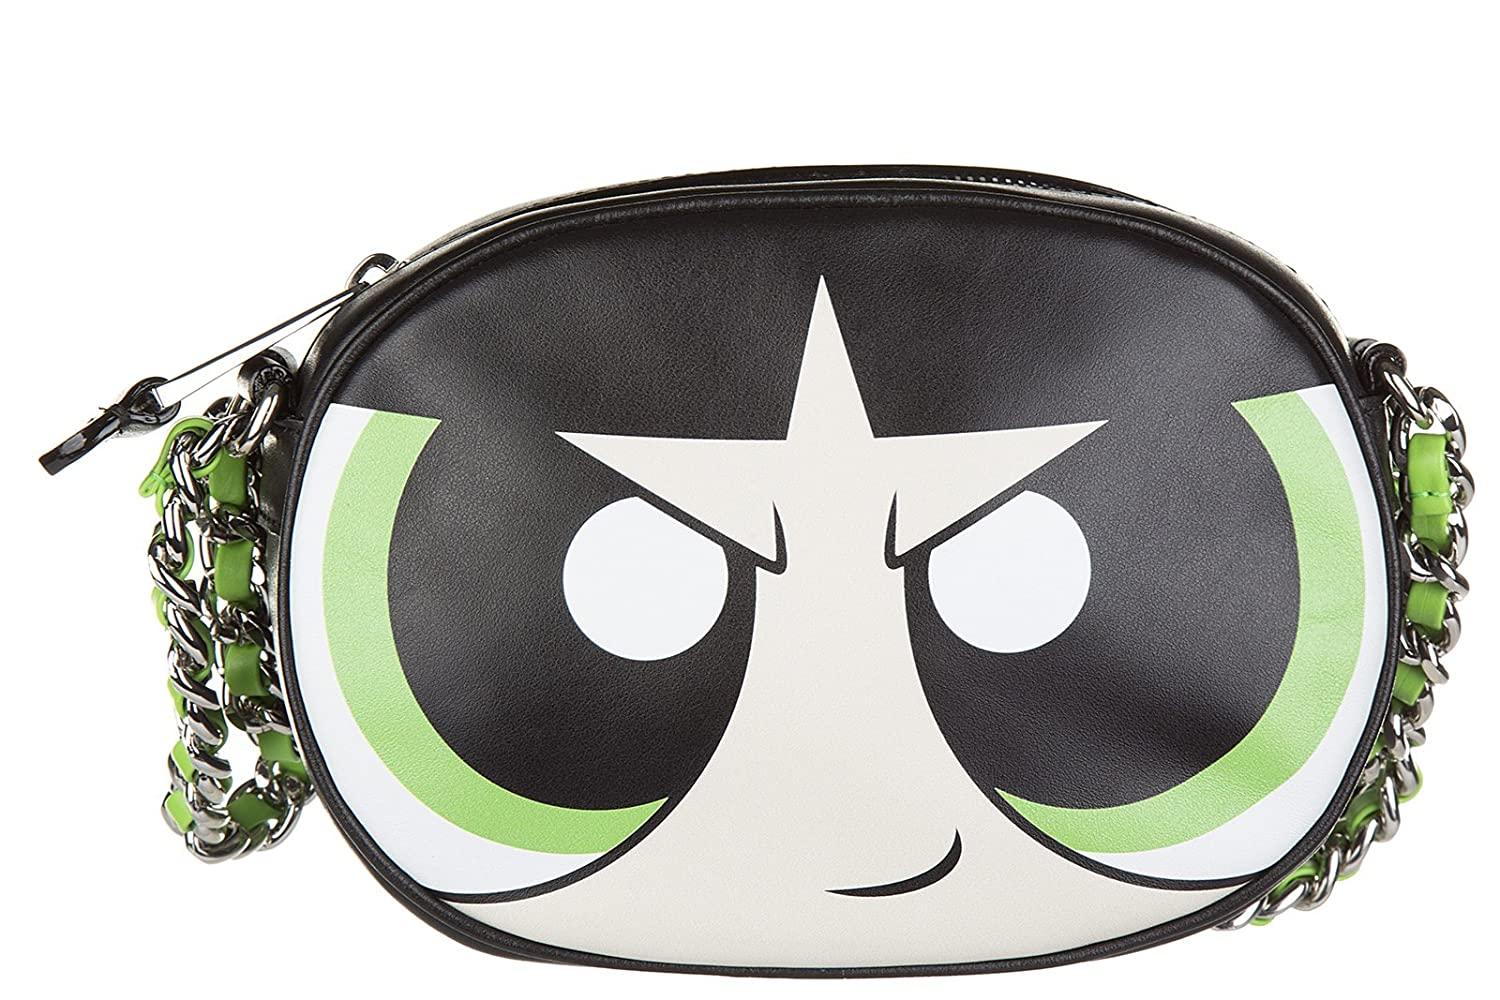 76933d303a Moschino women's leather shoulder bag original powerpuff girls green:  Amazon.co.uk: Shoes & Bags